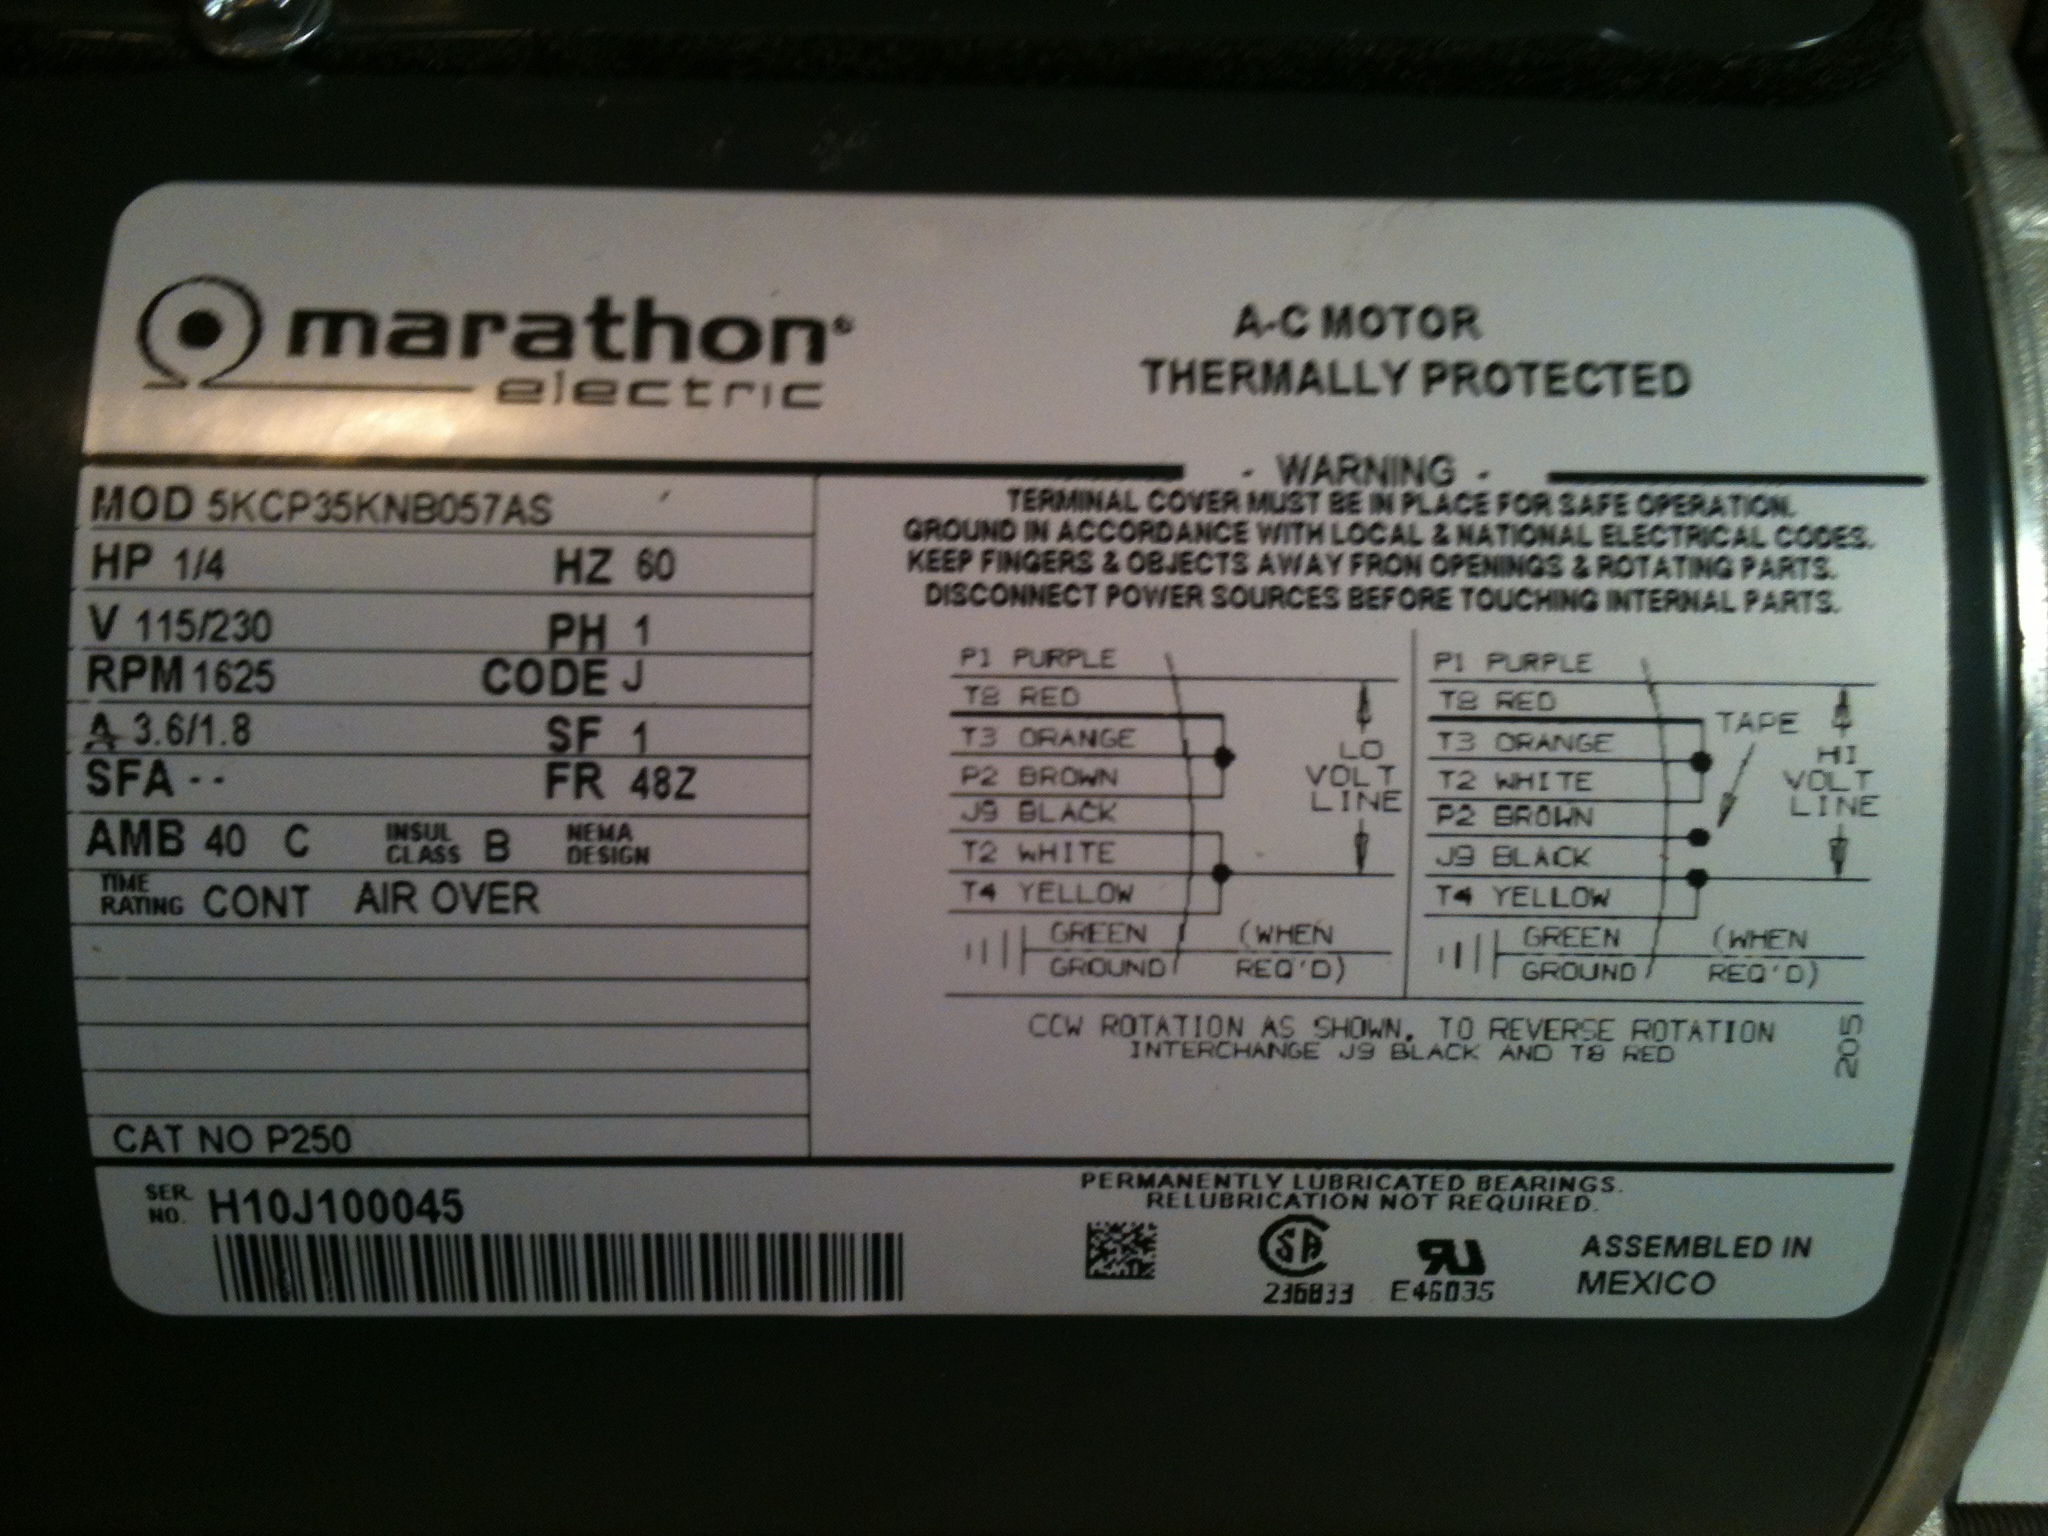 need help with marathon electric ac motor wiring rh justanswer com 208 230 volt motor wiring diagram 120 240 volt motor wiring diagram